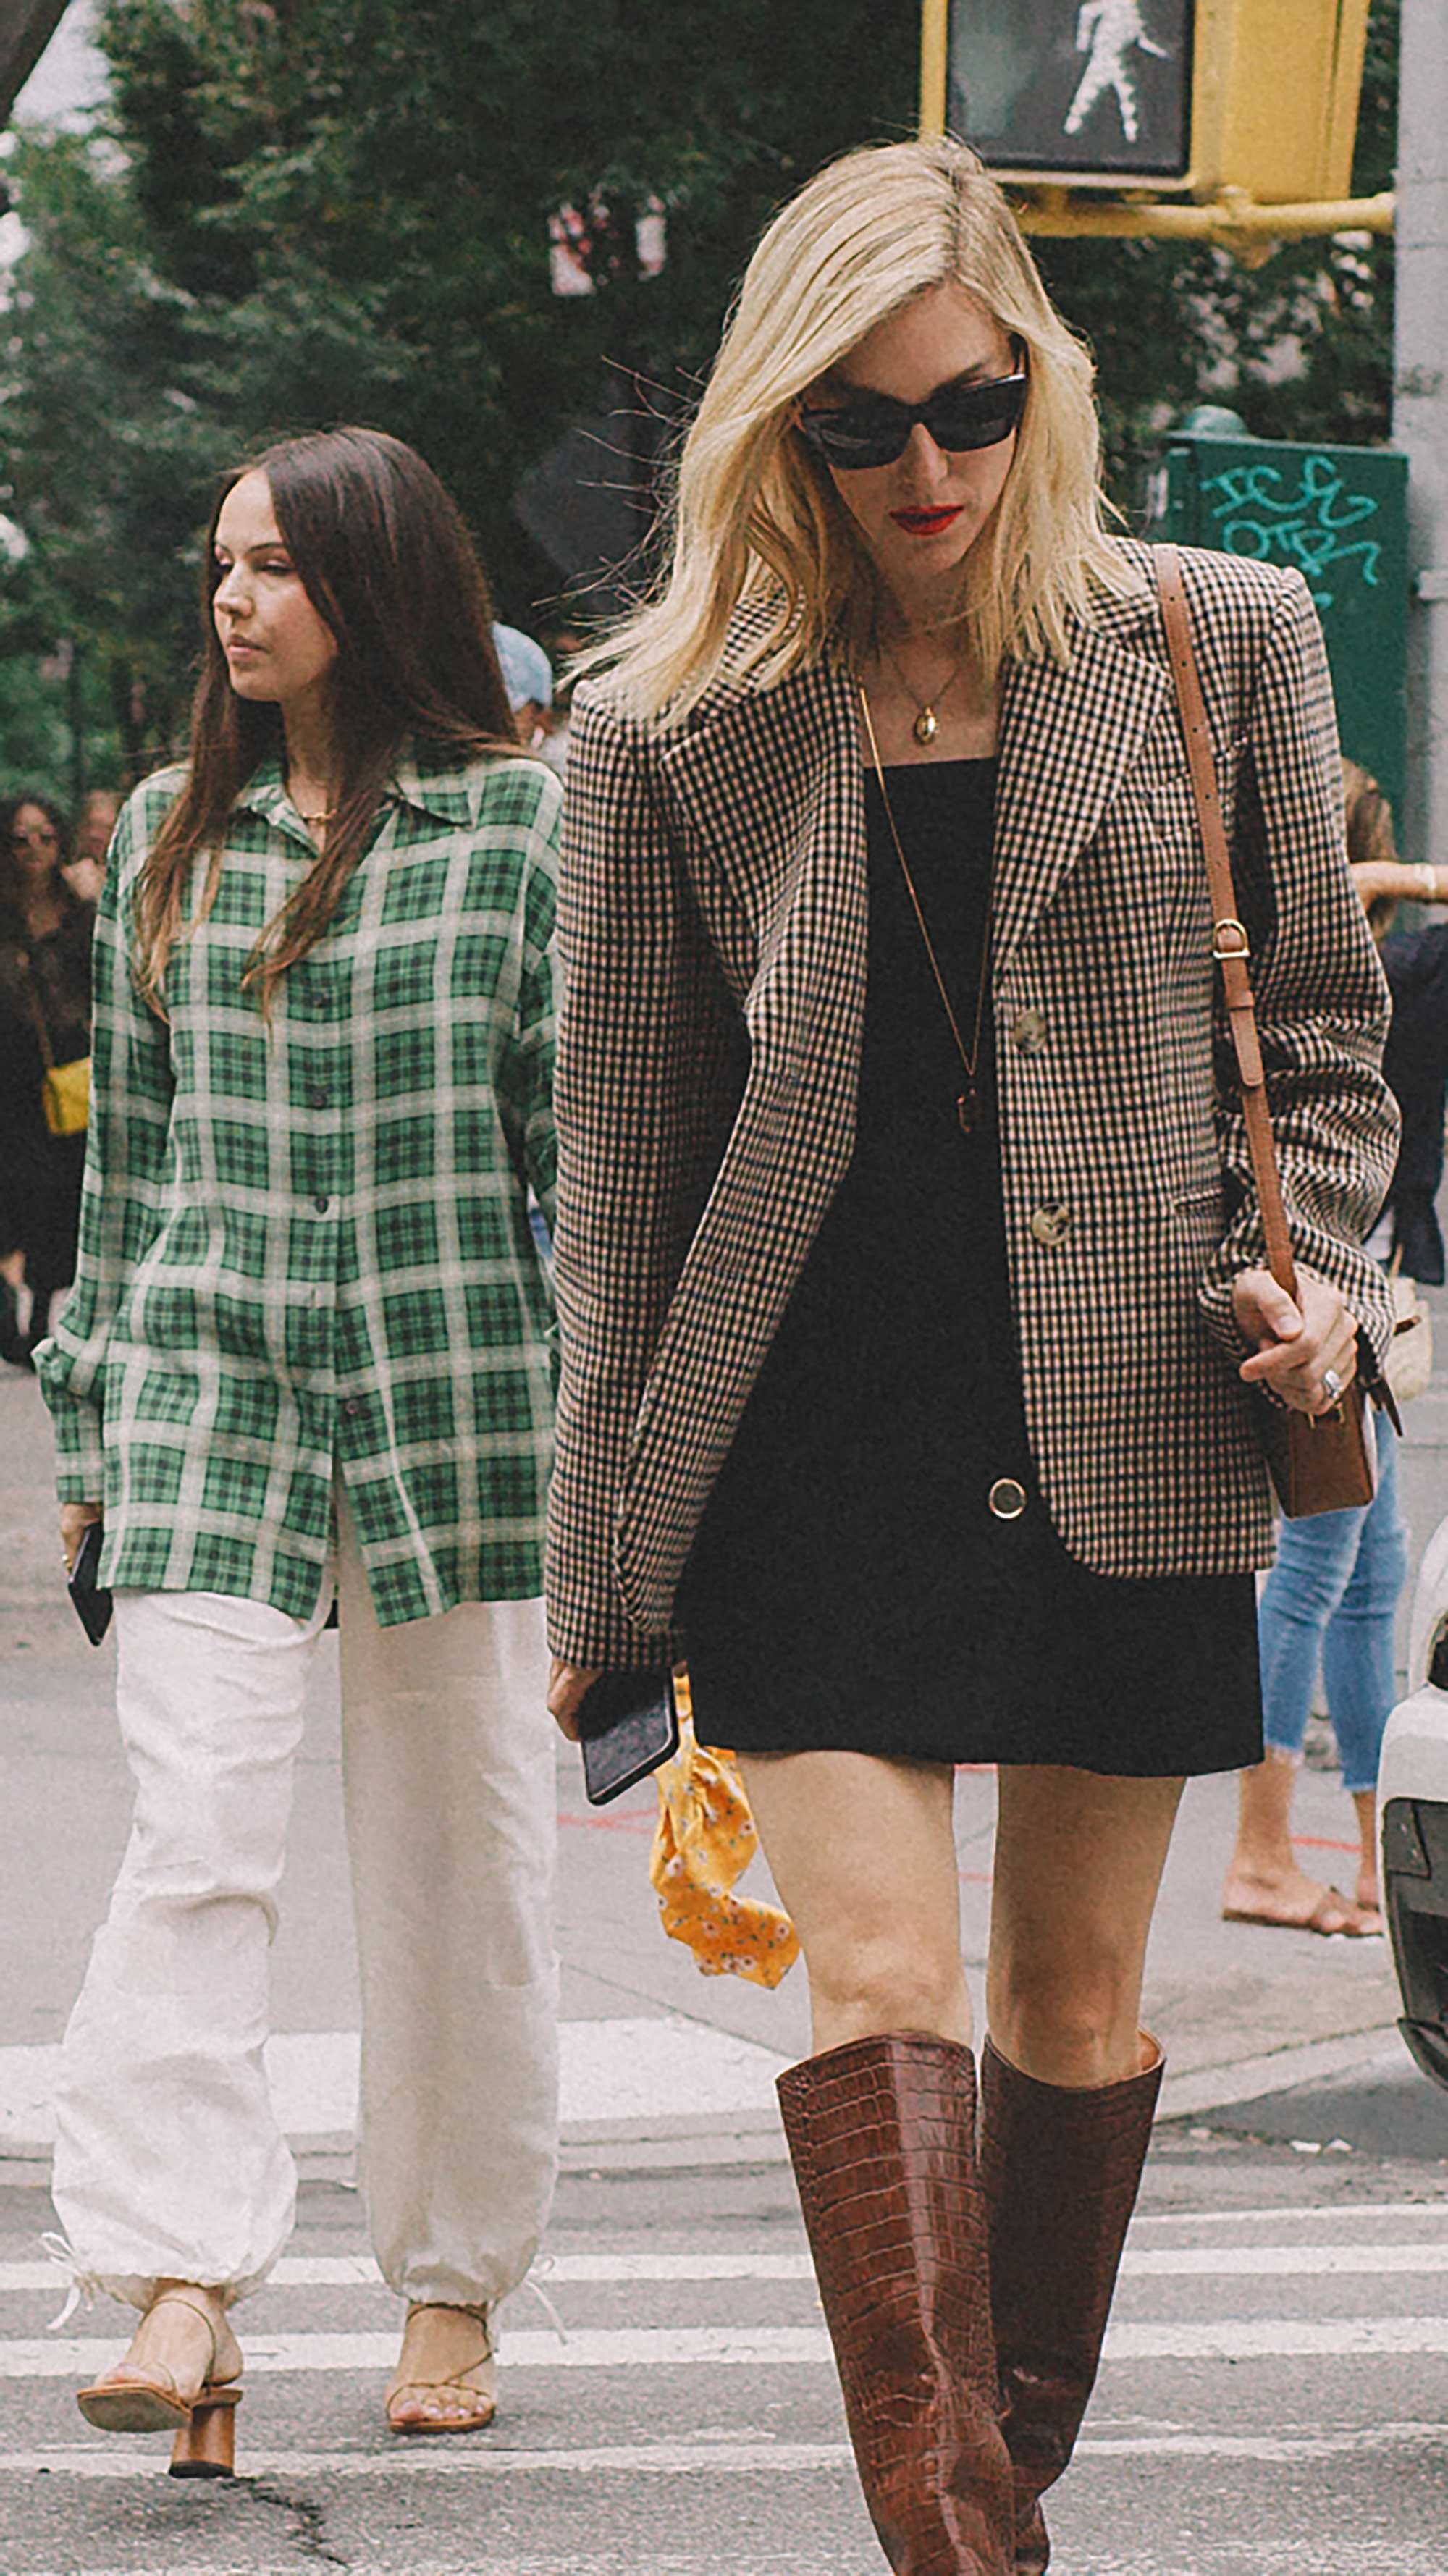 Best outfits of New York Fashion Week street style -44.jpg